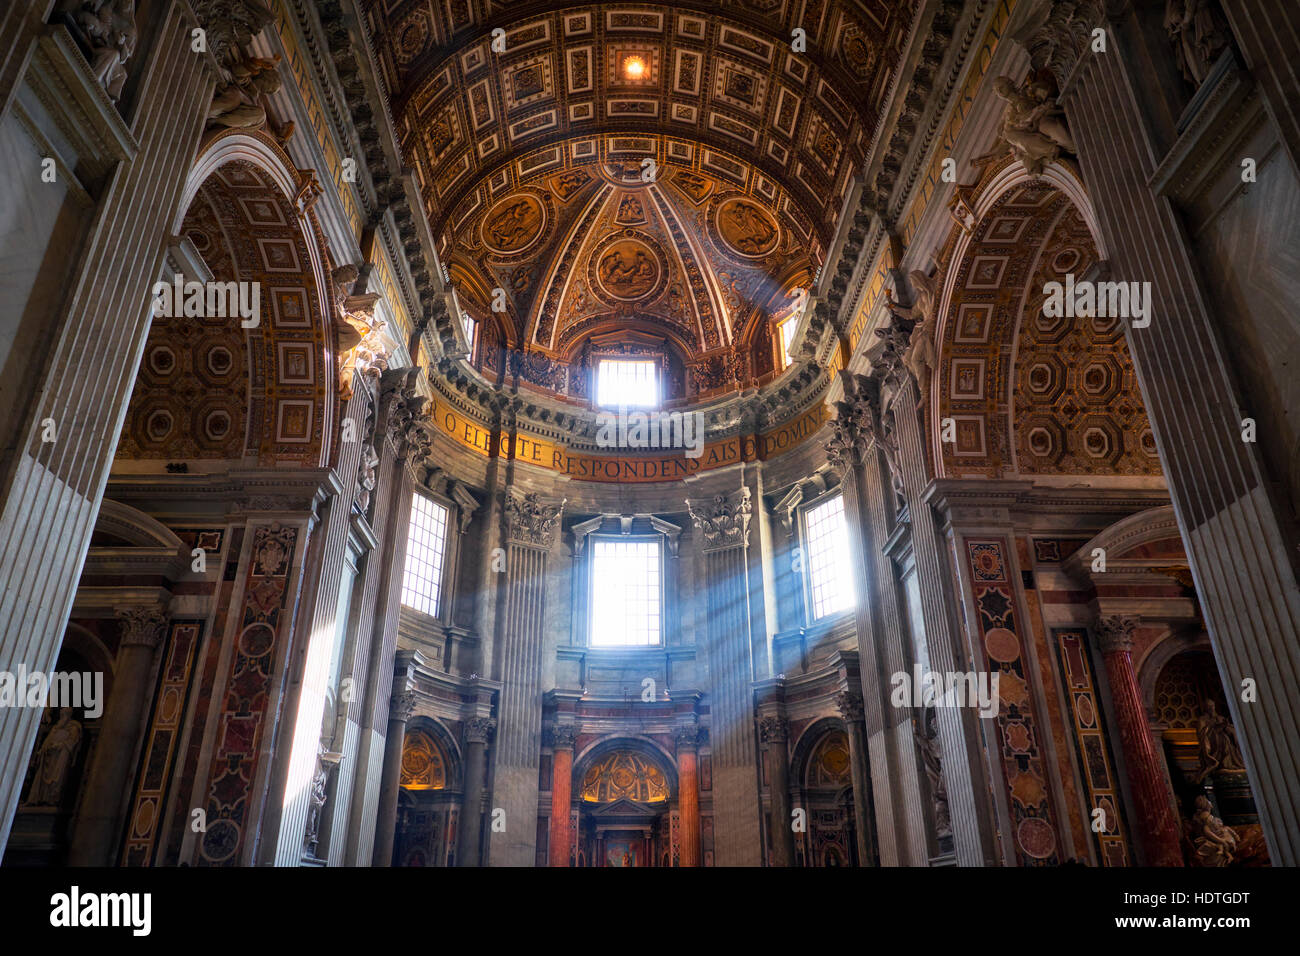 ROME, ITALY - JAN 12, 2016: Inside the Saint Peter basilica (San Pietro). - Stock Image